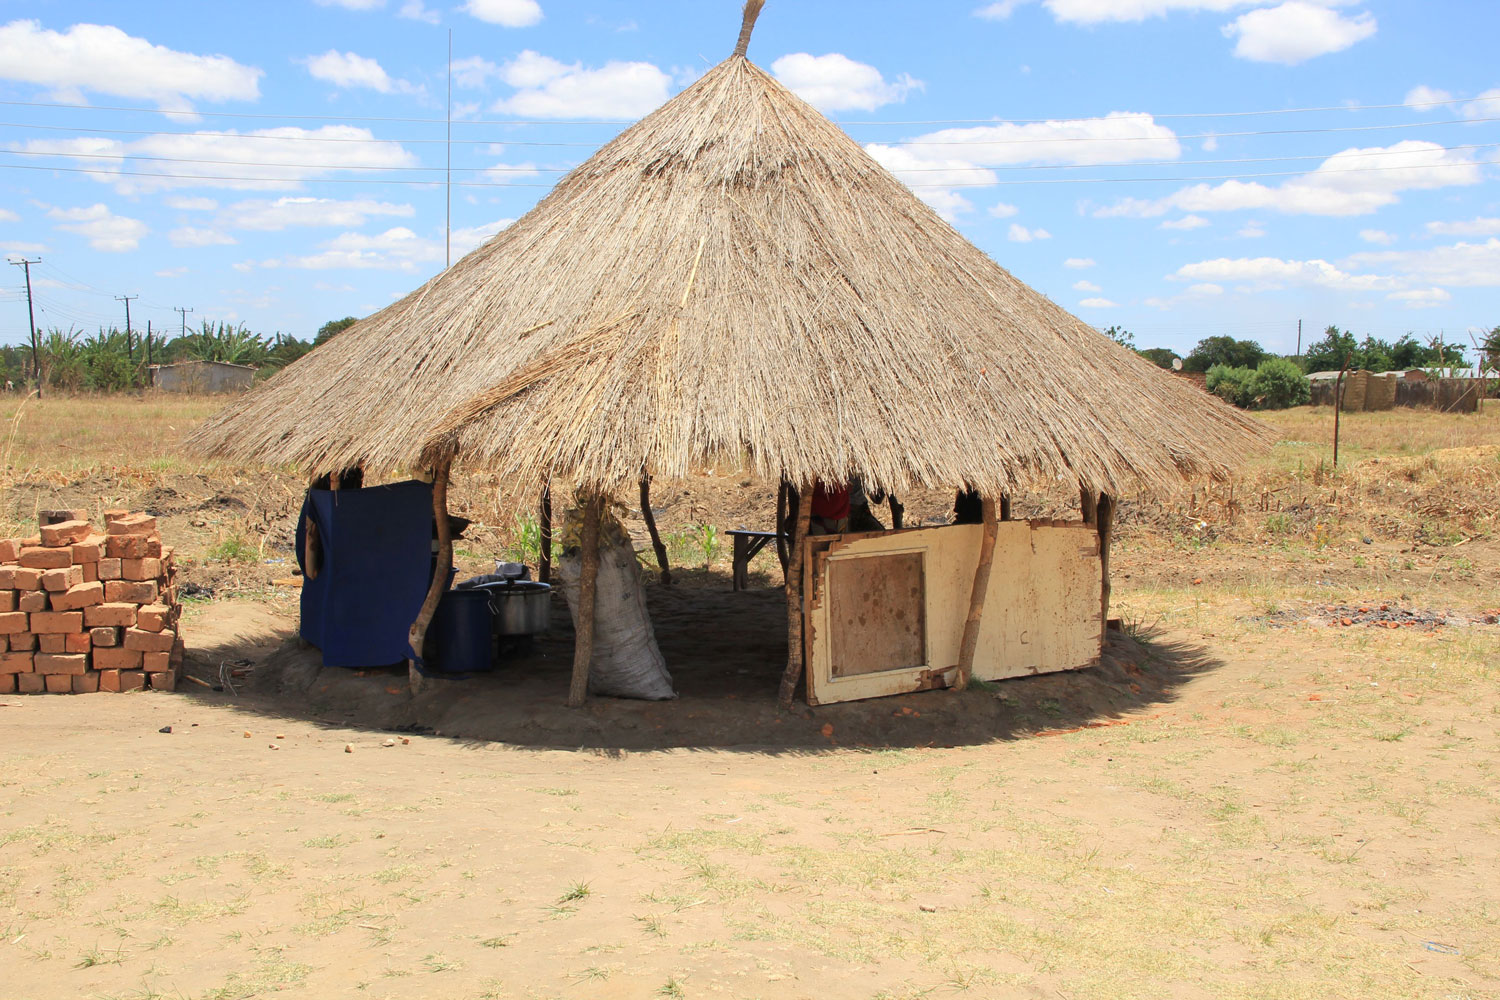 This thatched hut is used for cooking and storage in Chisamba community.